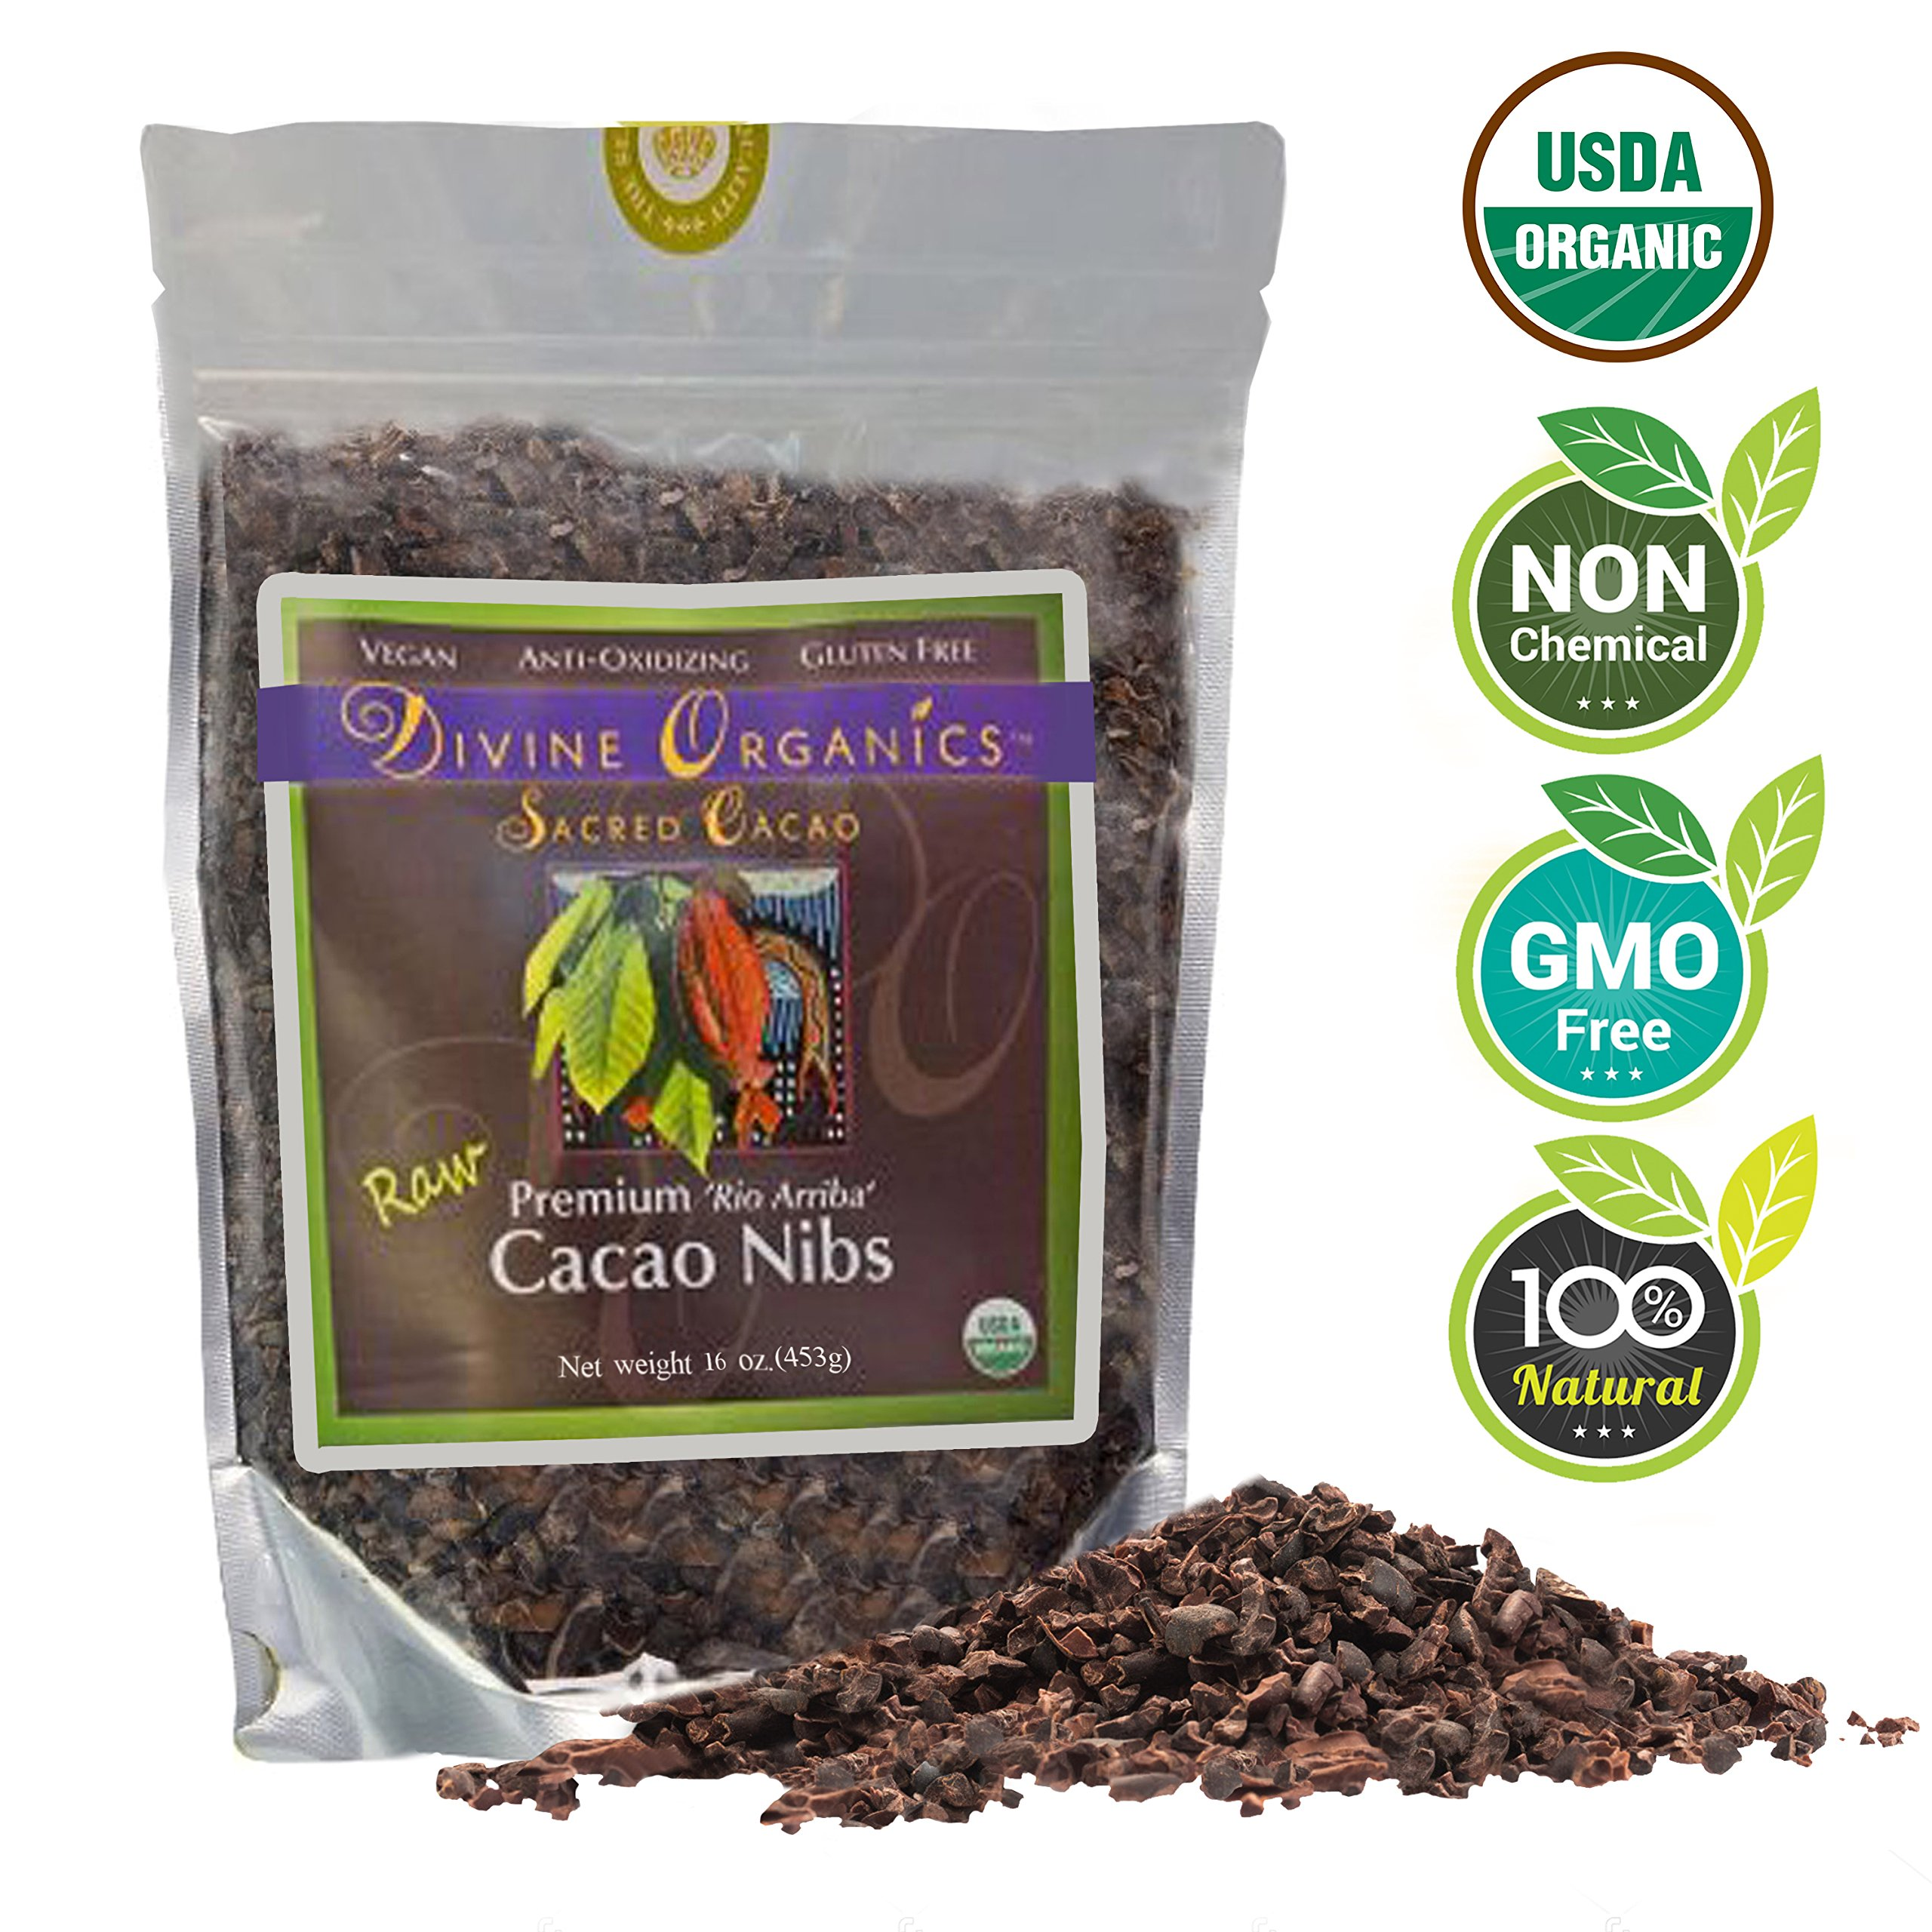 Divine Organics Raw Cacao/Cocoa Nibs - Certified Organic - Premium Rio Arriba - Smoothies, Baking, Snacks, Salads, Trail Mixes - Chocolate Chips Substitute - Rich in Magnesium (16oz)